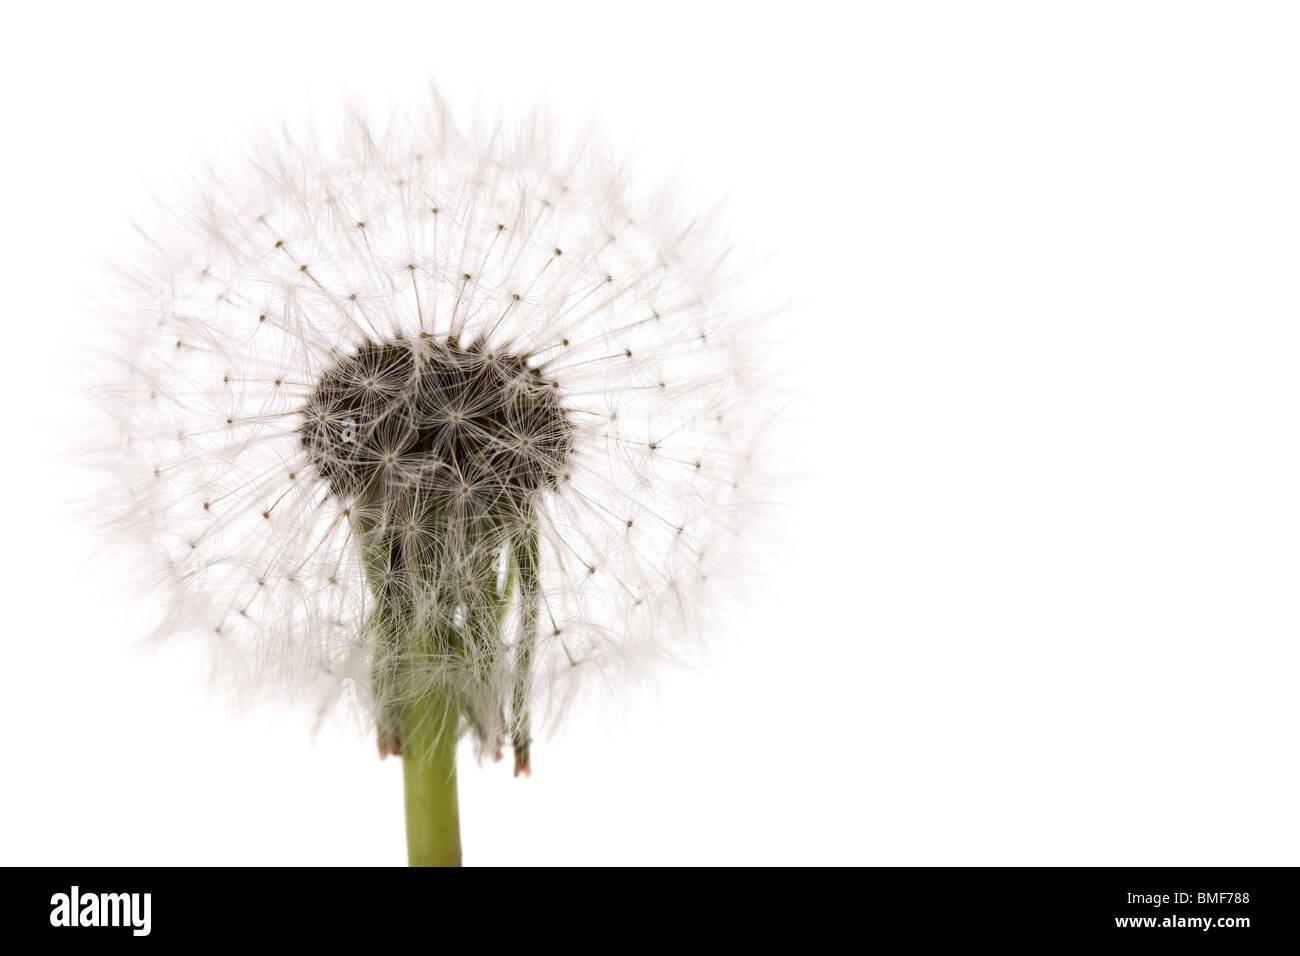 dandelion close up shot with white background - Stock Image